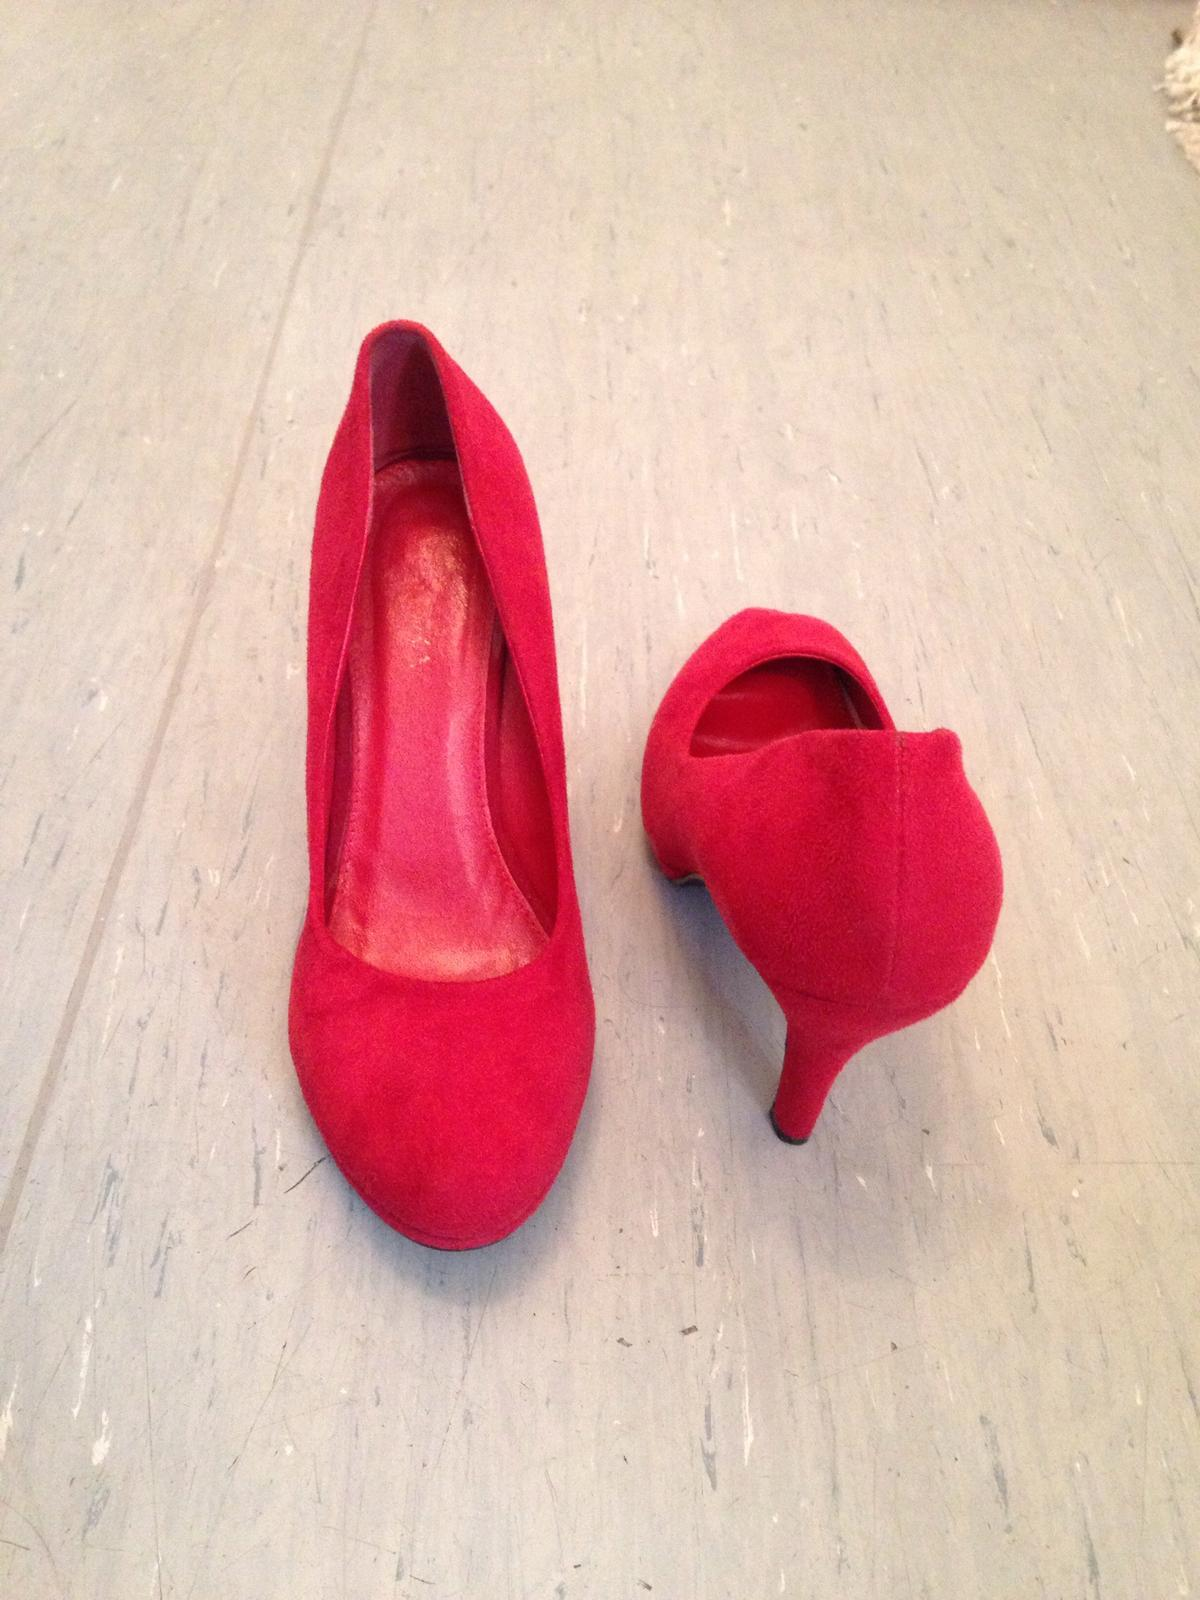 Rote High Heels, 39 in 34127 Kassel for €10.00 for sale Shpock